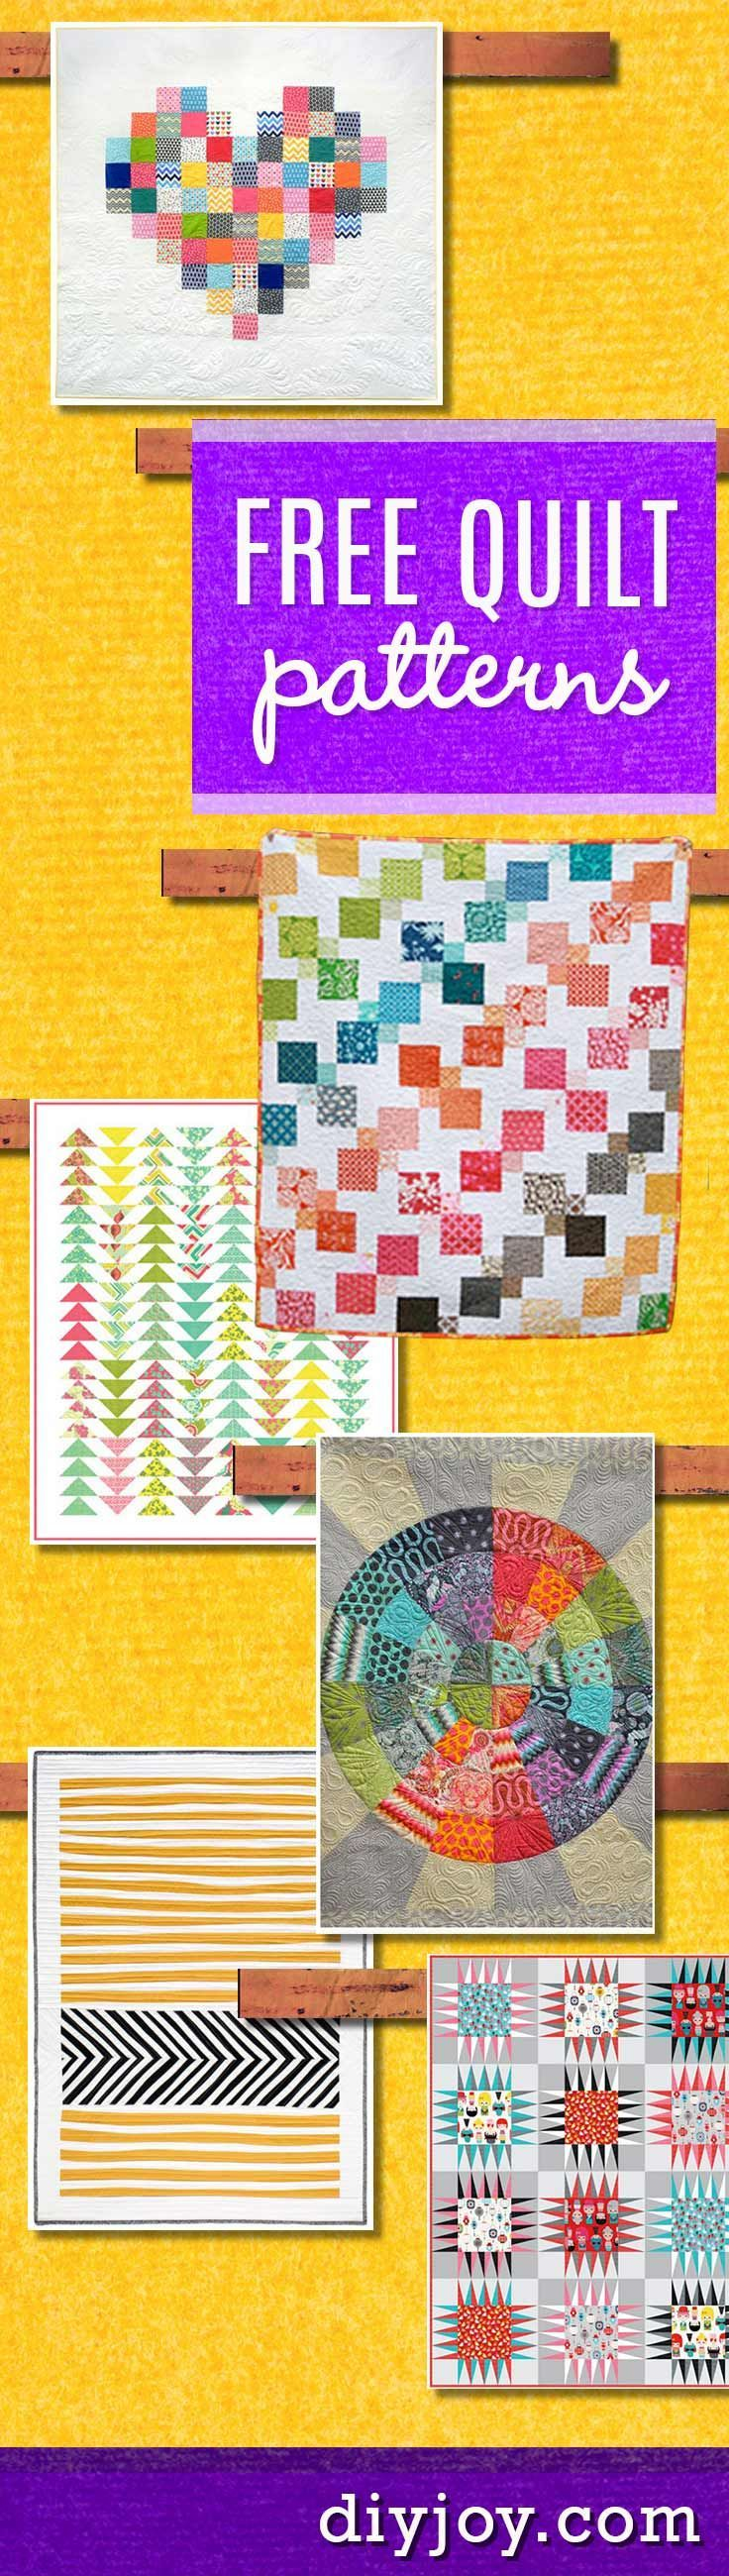 Free Diy Projects 101 Best Diy Projects For The Home Images On Pinterest Diy